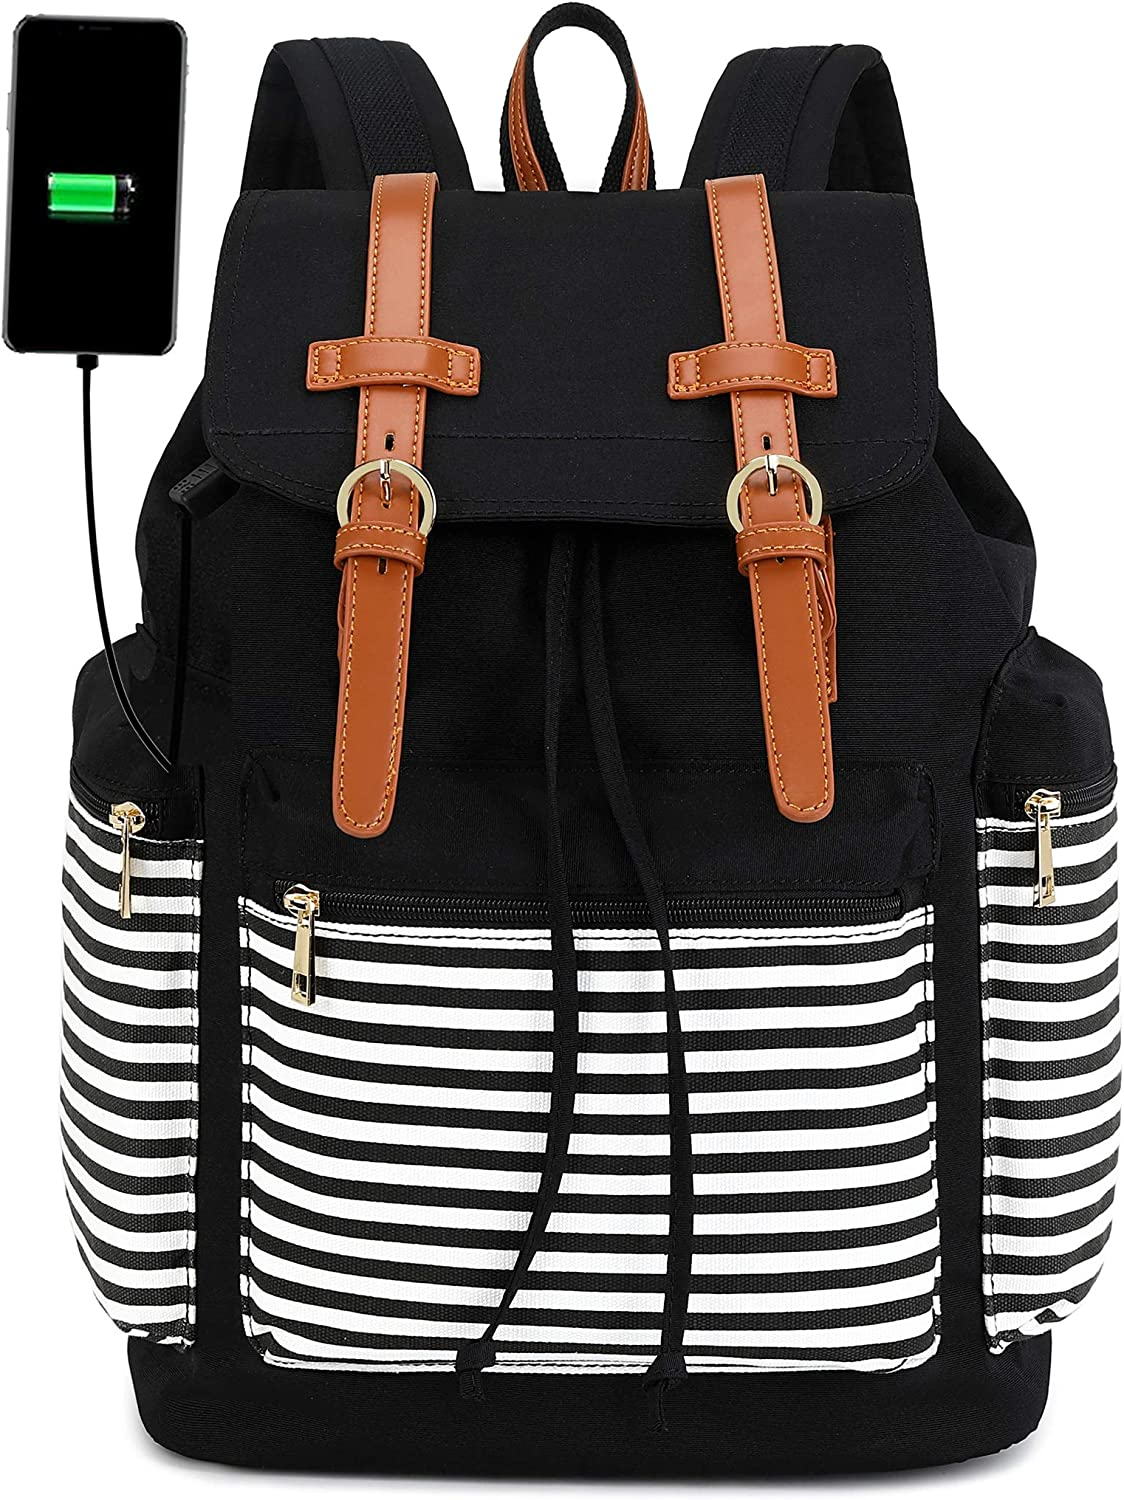 Travel Laptop Backpack for Women and Mens School College Bookbag with USB Charge Port for Notebook with Trolley Sleeve on Suitcase (Black and black white stripe)